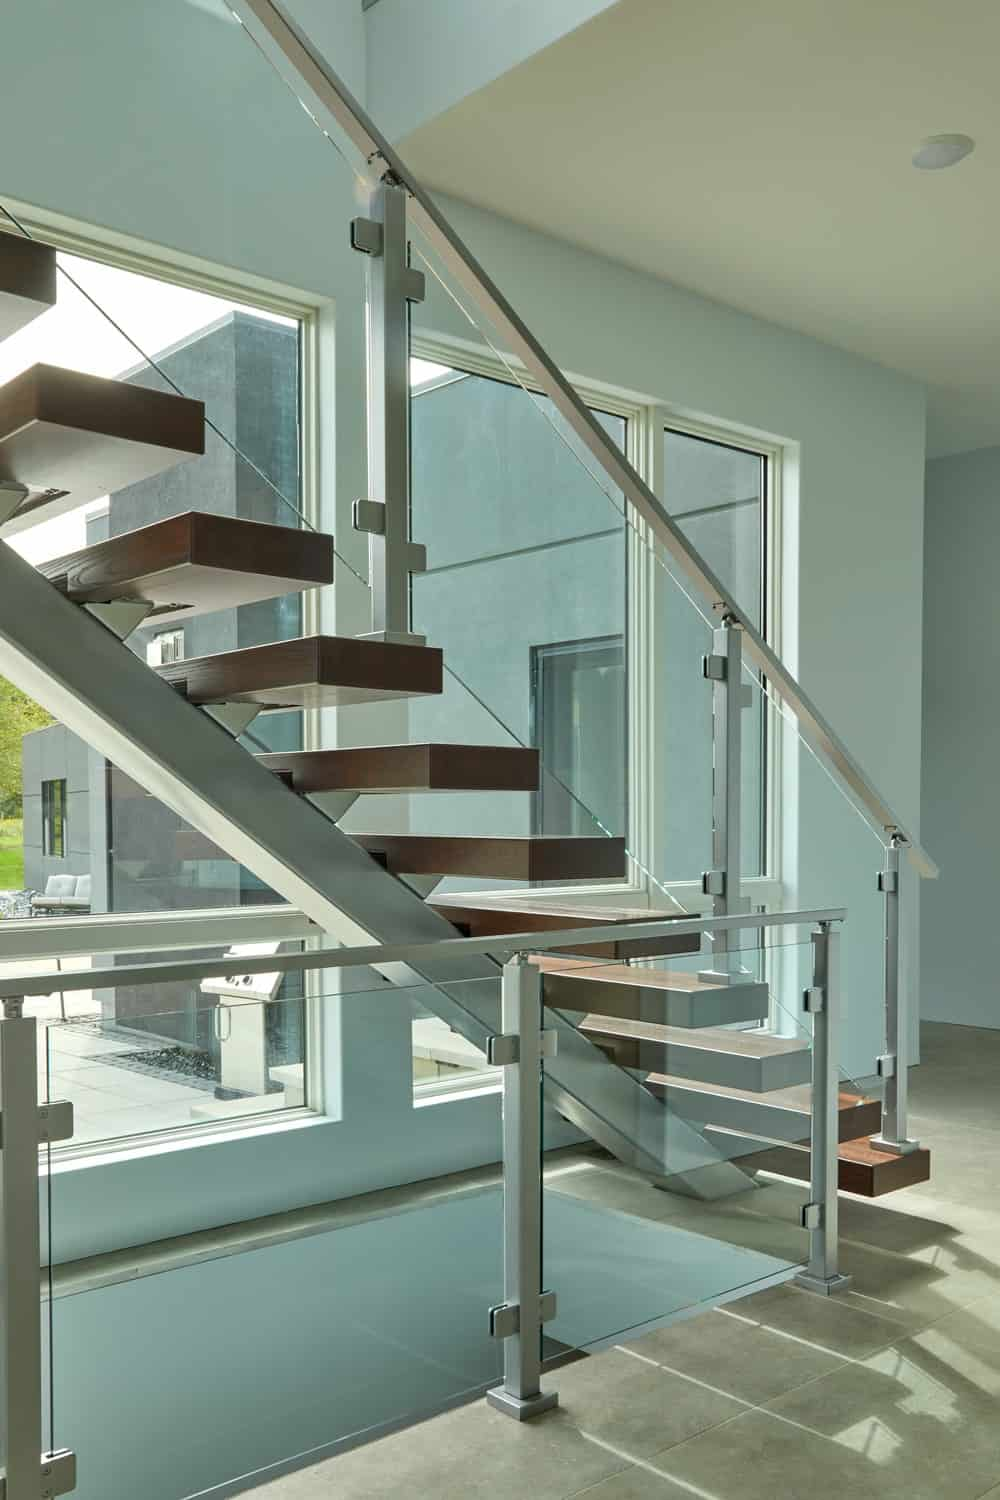 The glass walls on the side of the staircase also give it a clear view of the landscape outside.